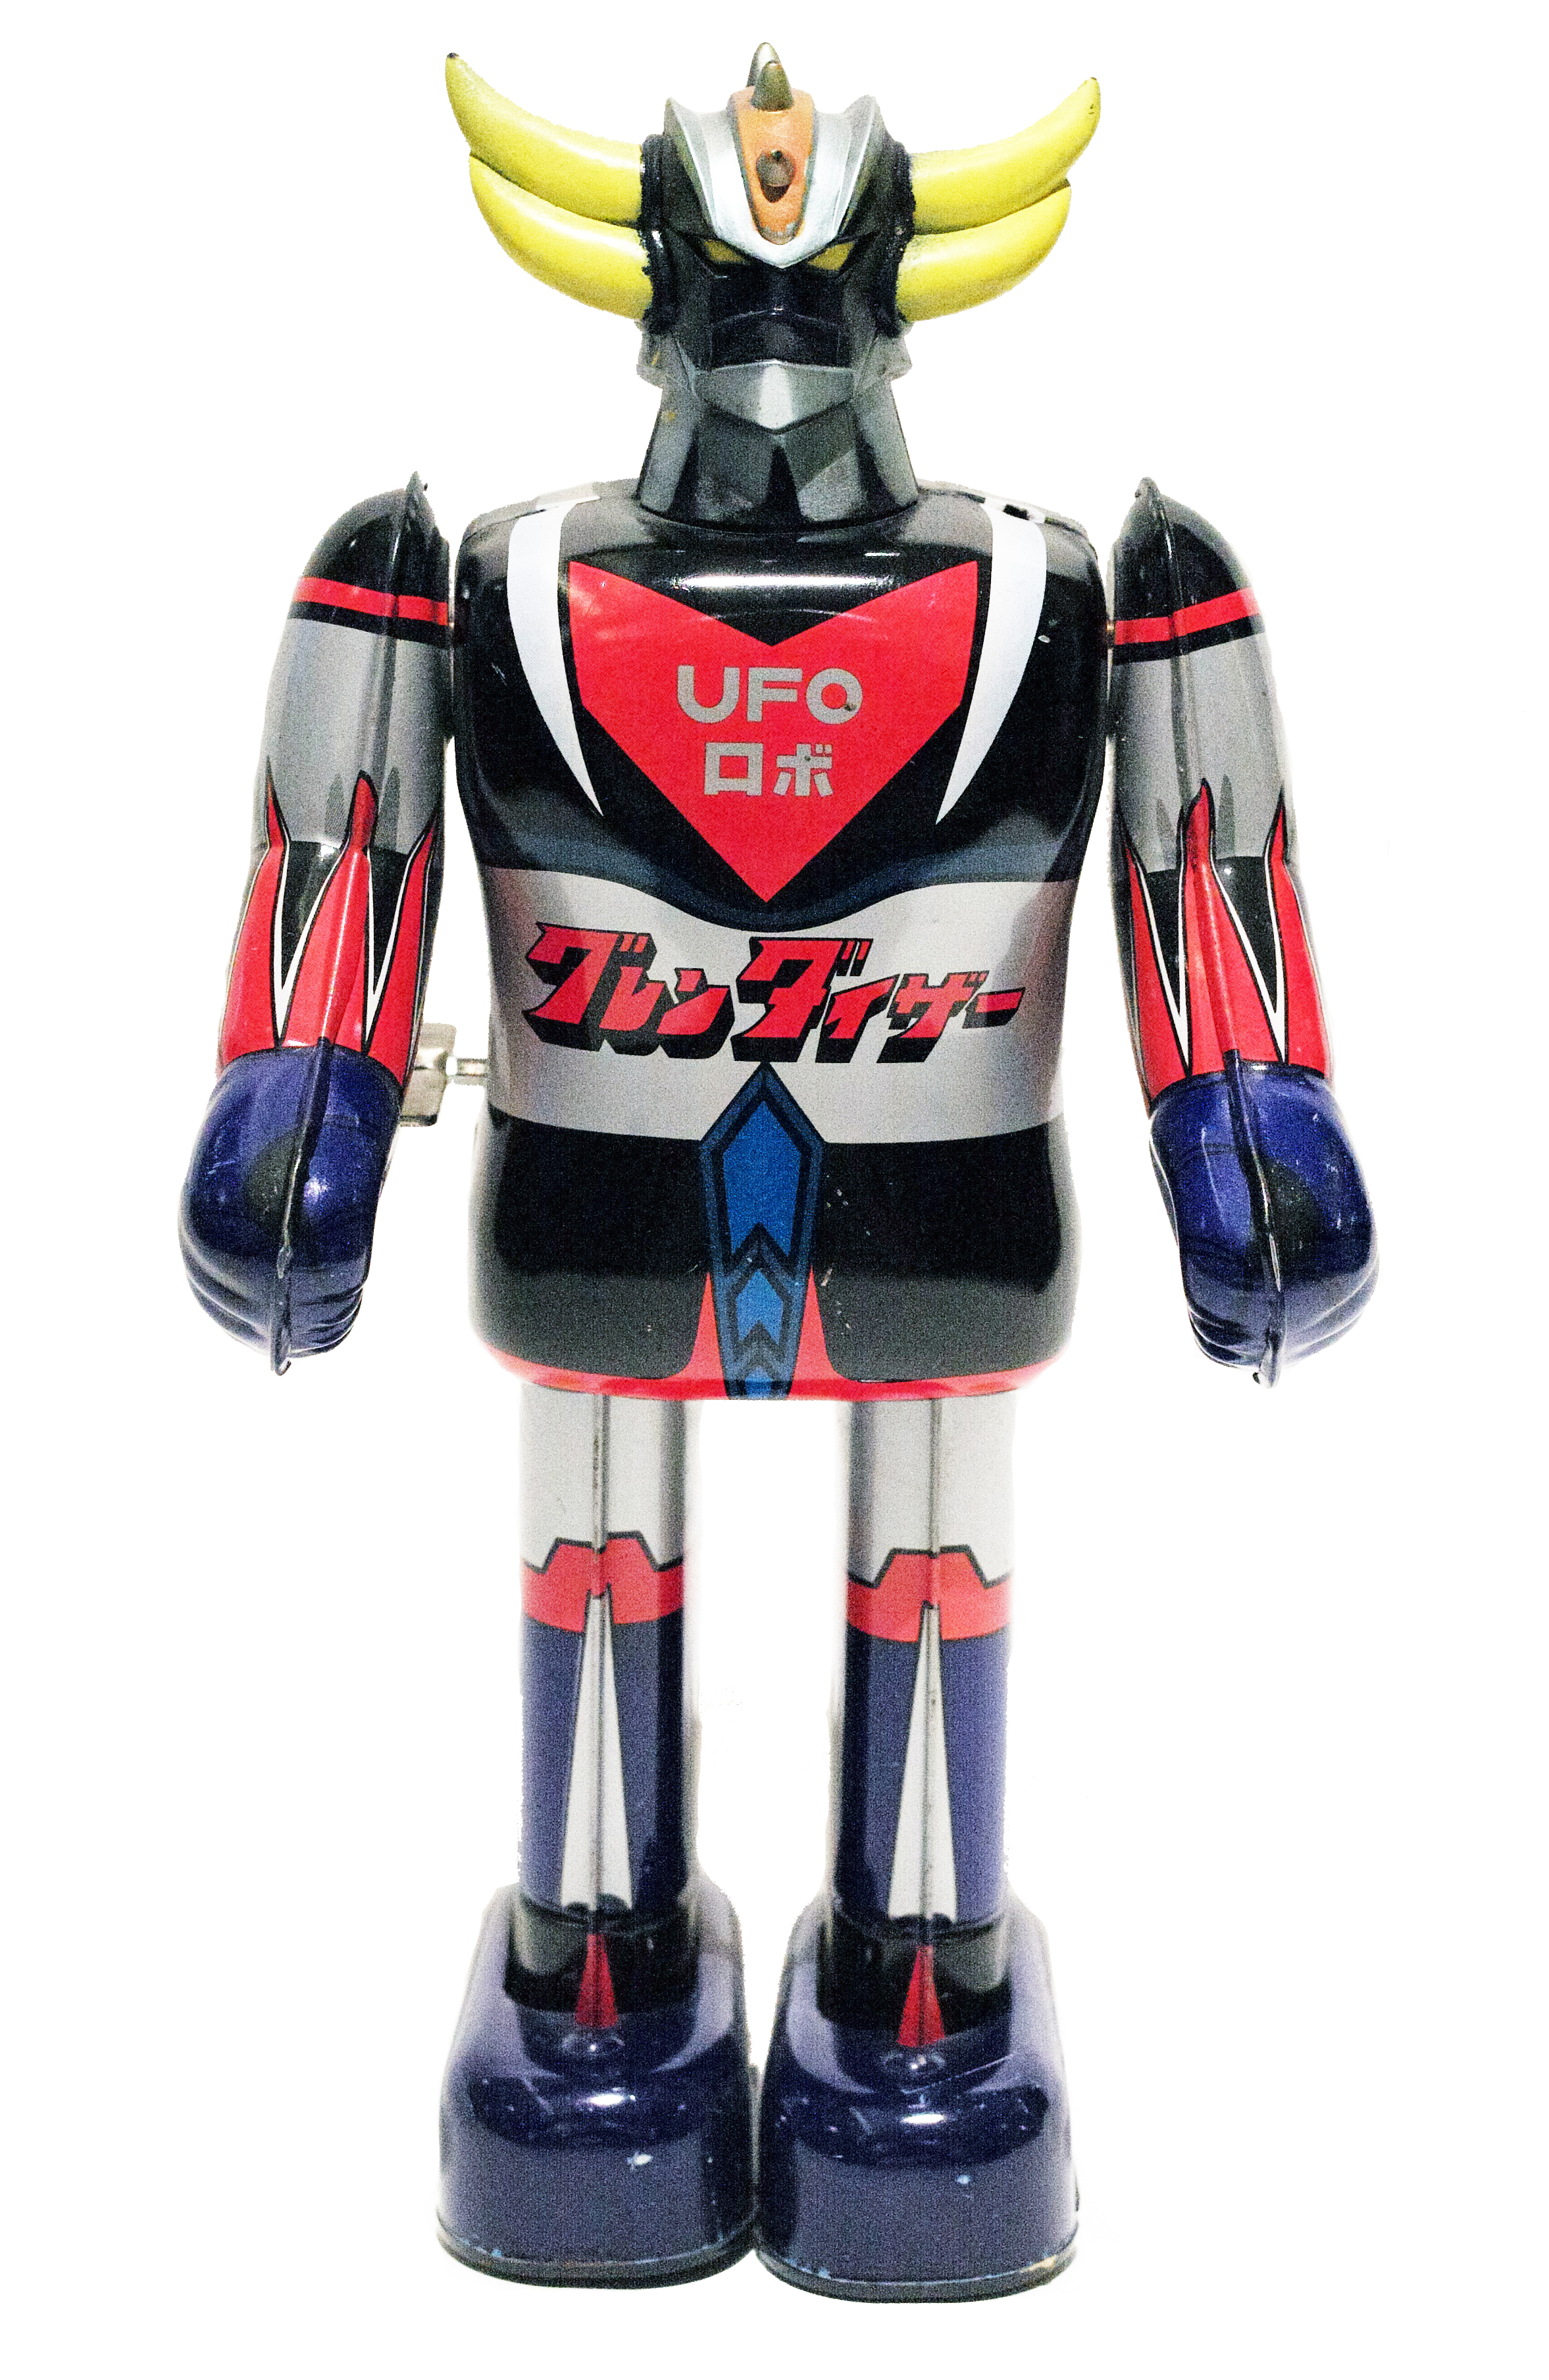 UFO ROBOT GRENDIZER WIND-UP